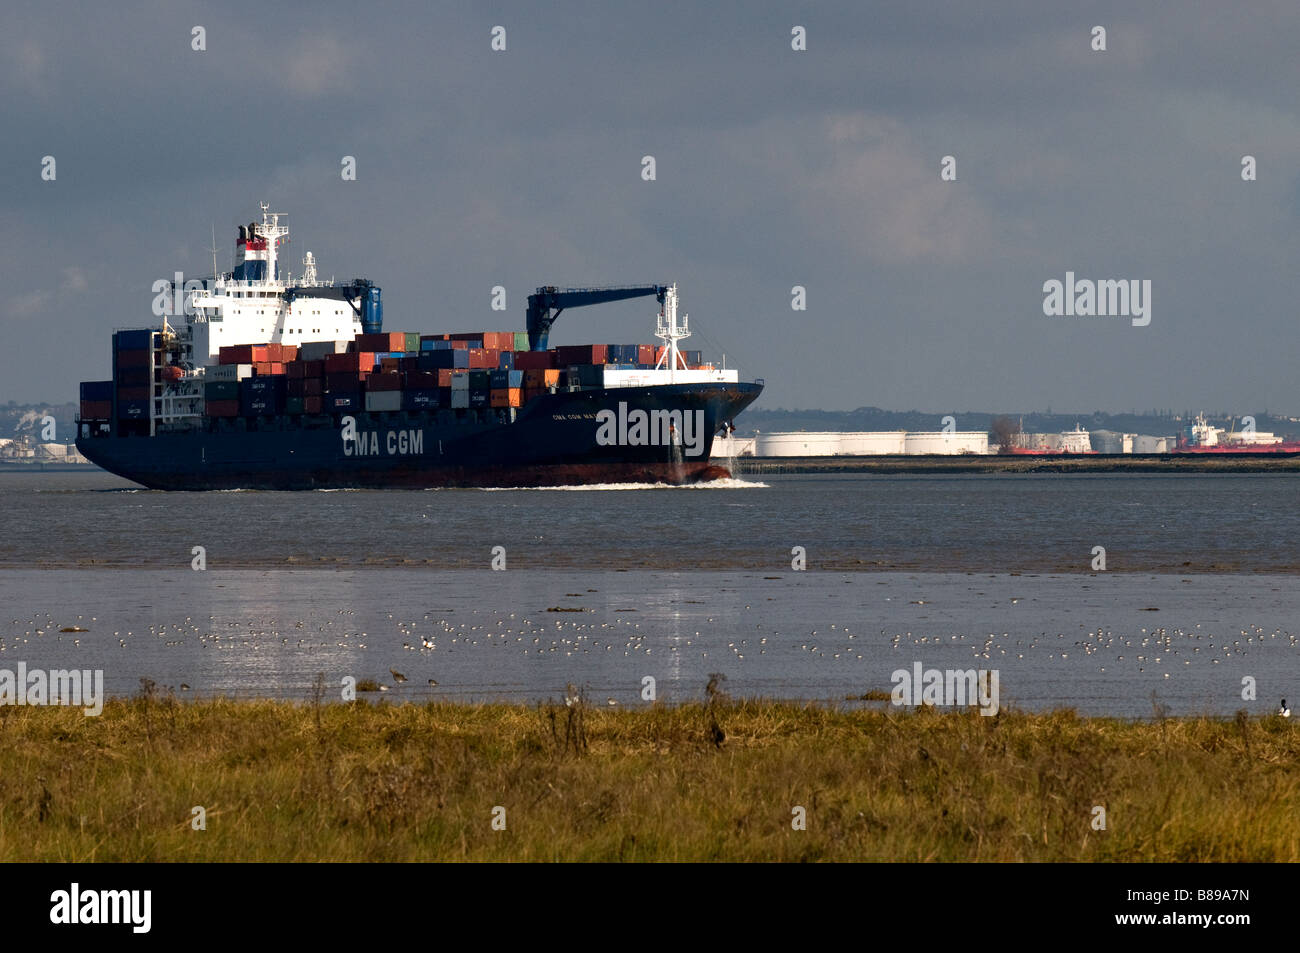 The container ship Matisse, steaming upriver on the River Thames. - Stock Image